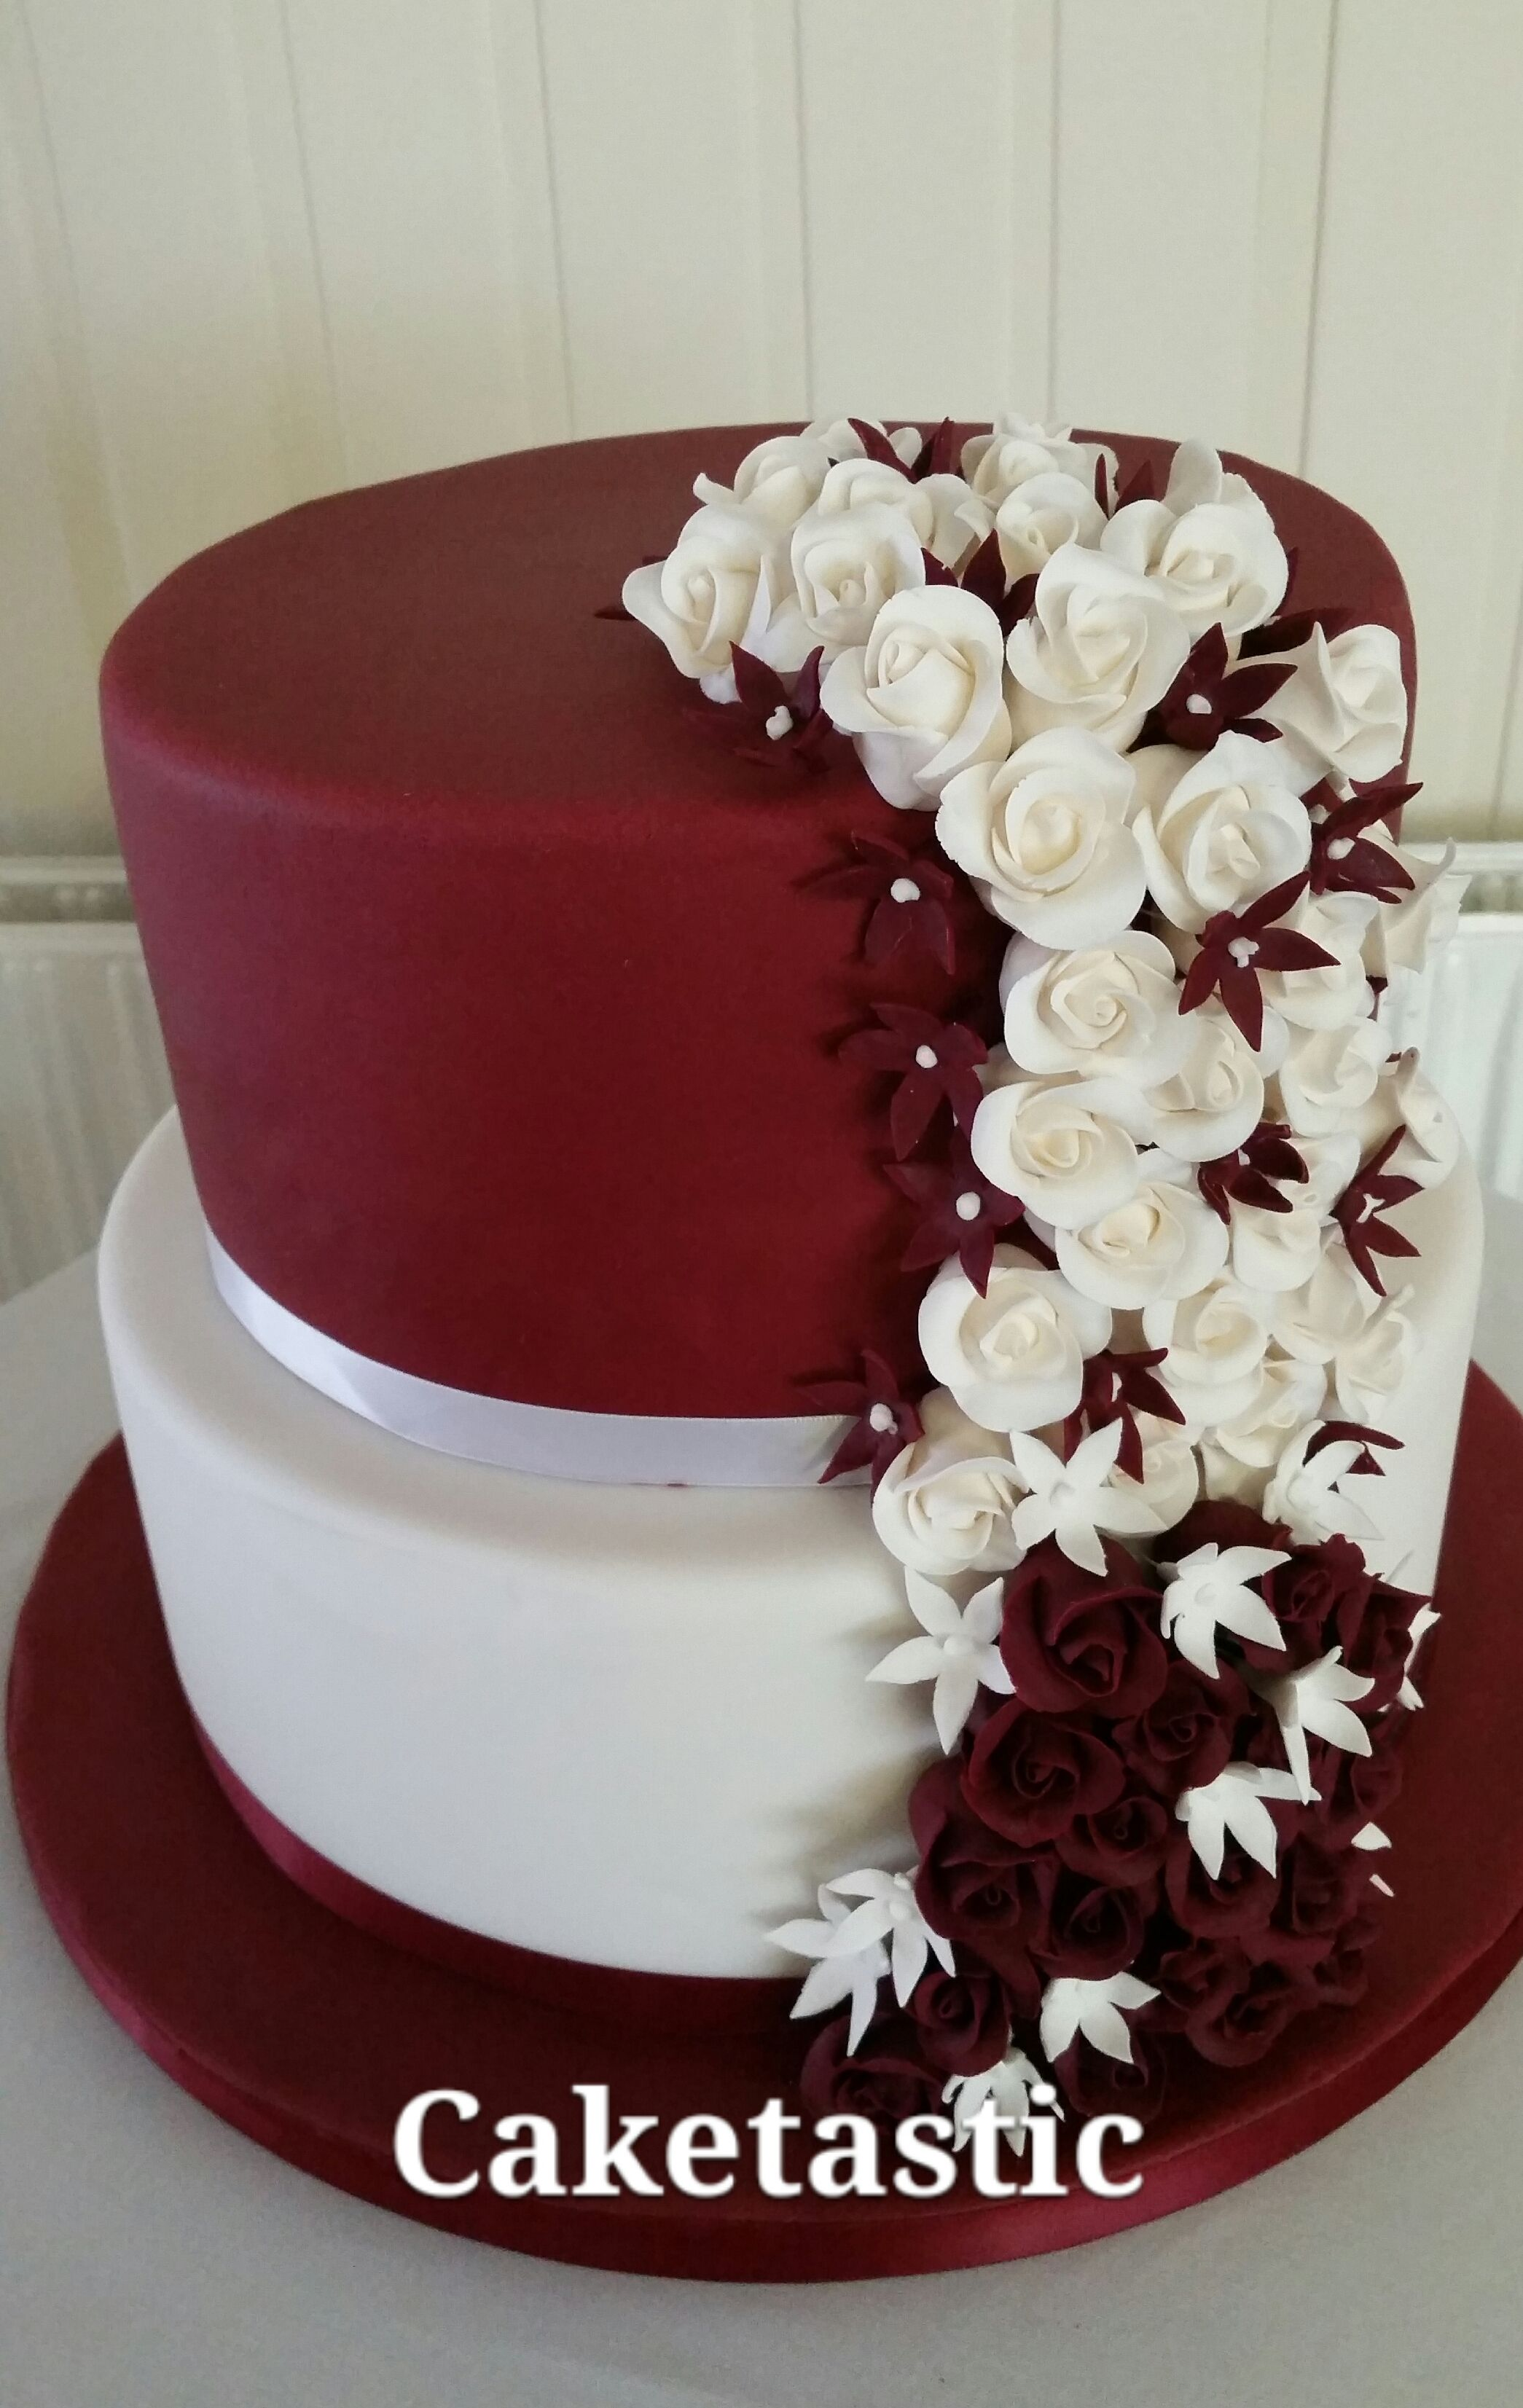 2 Tier Ivory And Burgandy Wedding Cake With Roses Cascading